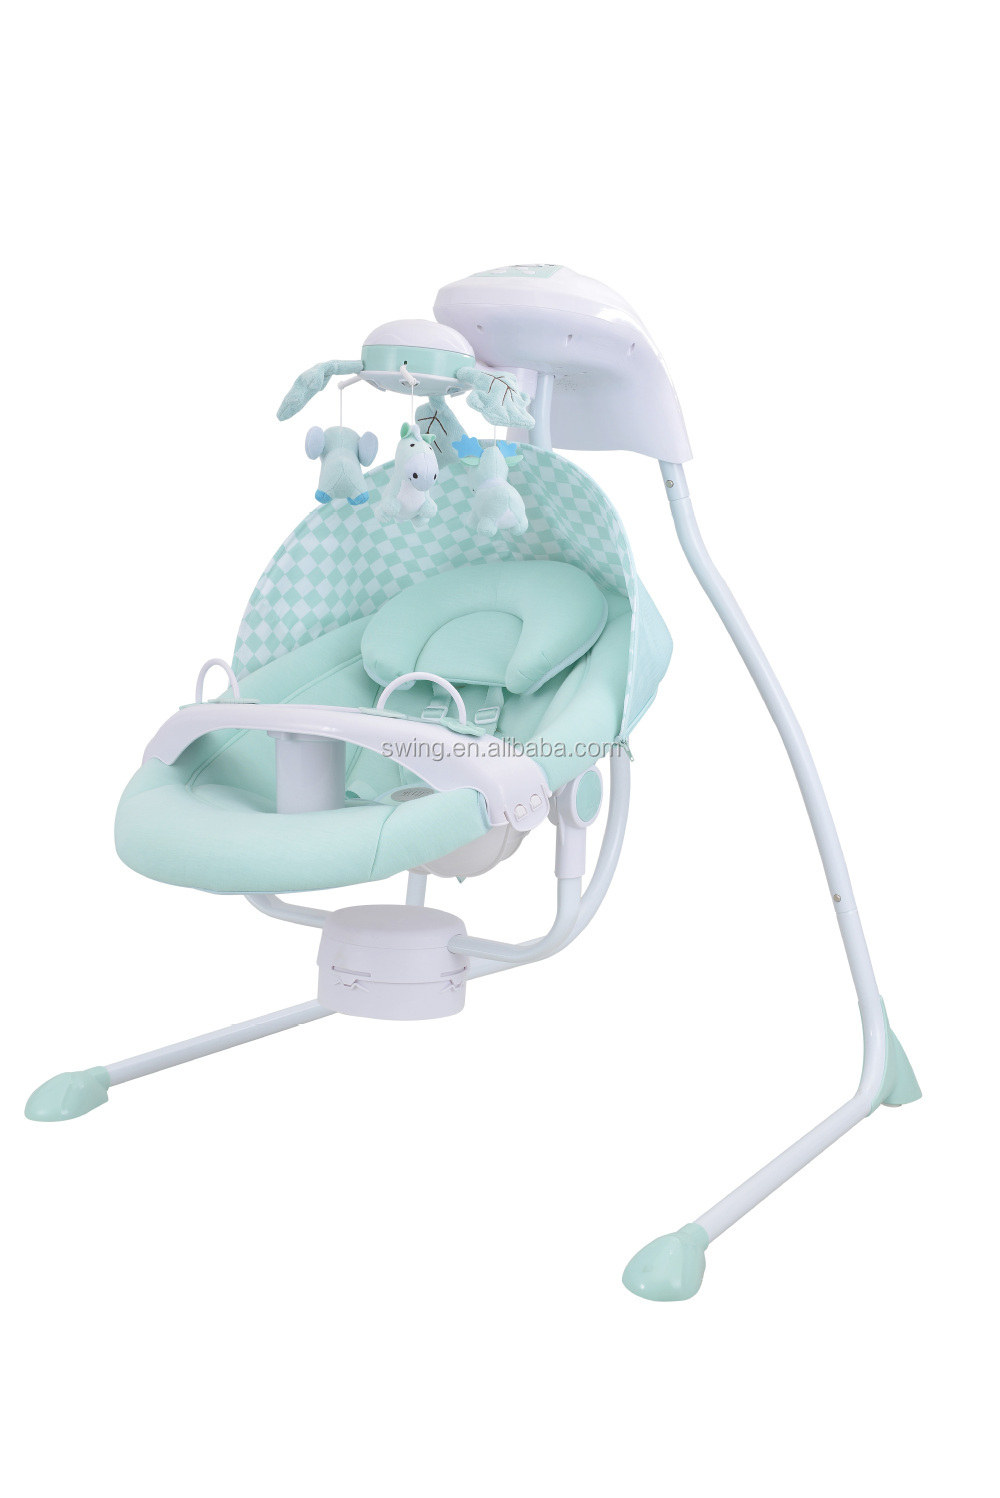 Fisher Price Baby Chair Toys Factory Fisher Price Baby Swing Bed Buy Babi Bouncer Rocker Babi Rocking Chair And Plastic Swing Bed Toy Factori Babi Rcoking Bed Product On